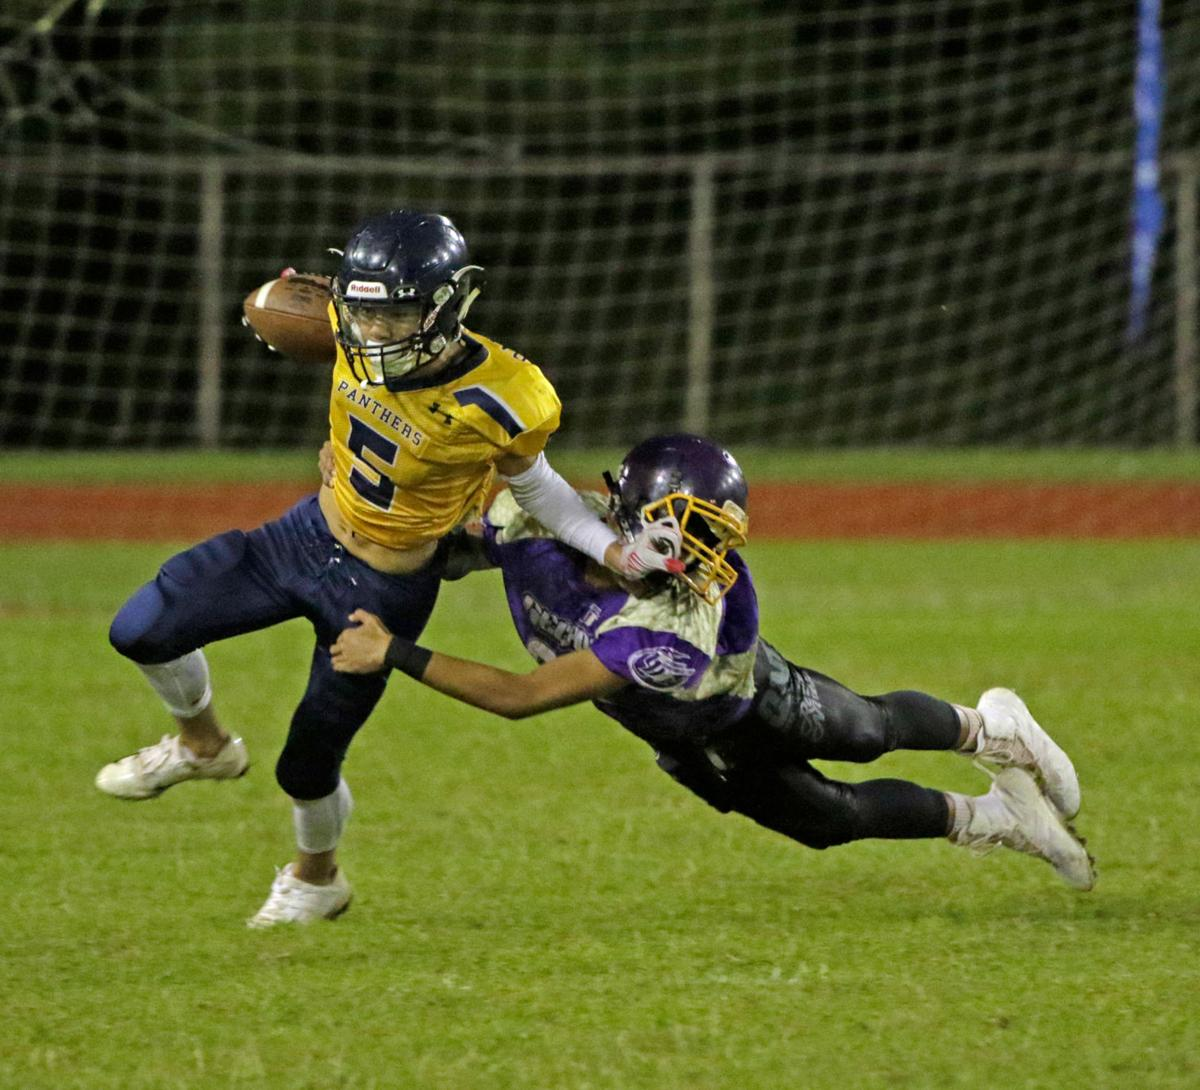 Triple J All-Star Game ends in 12-12 tie